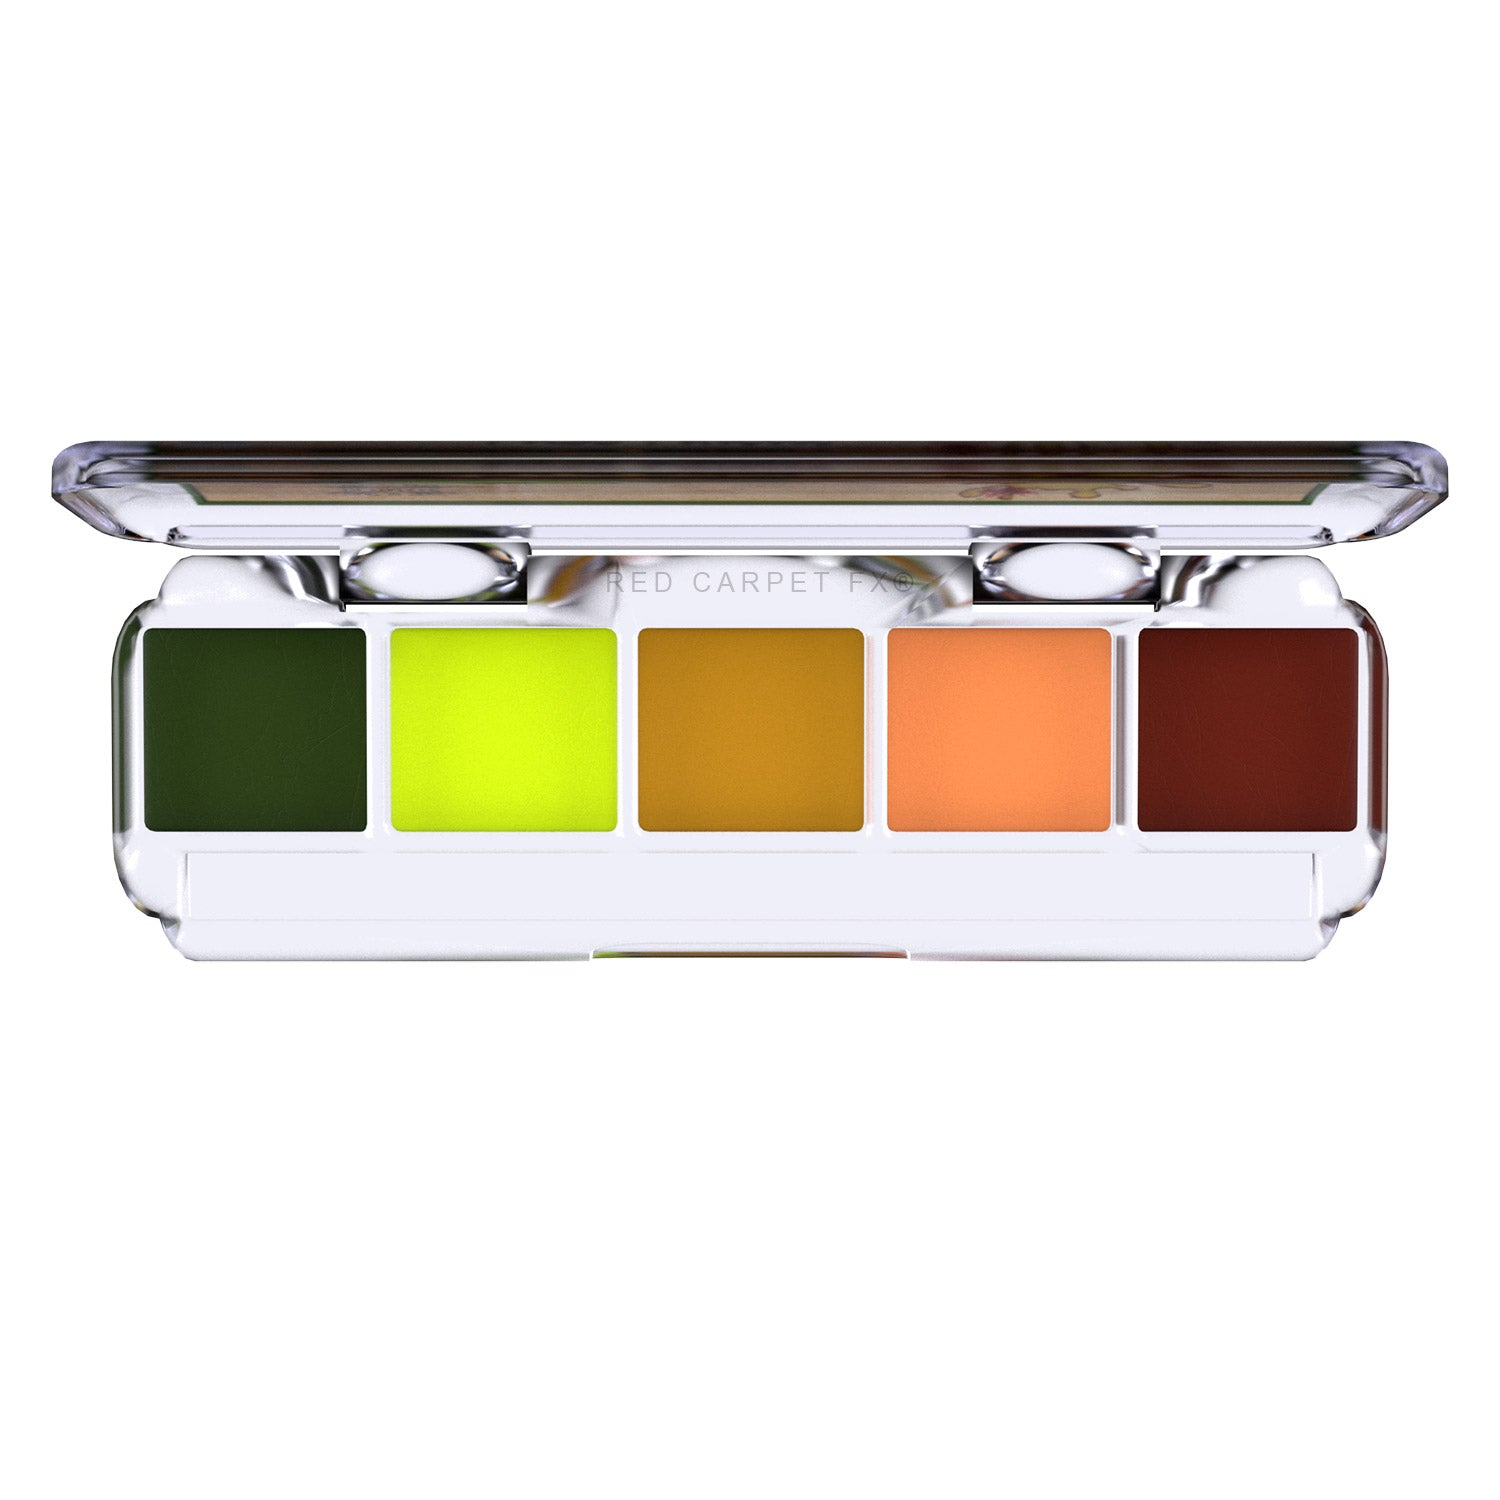 Dashbo Ultimate Special Edition 5 Colour Palette - Susan's Boil - Red Carpet FX - Professional Makeup